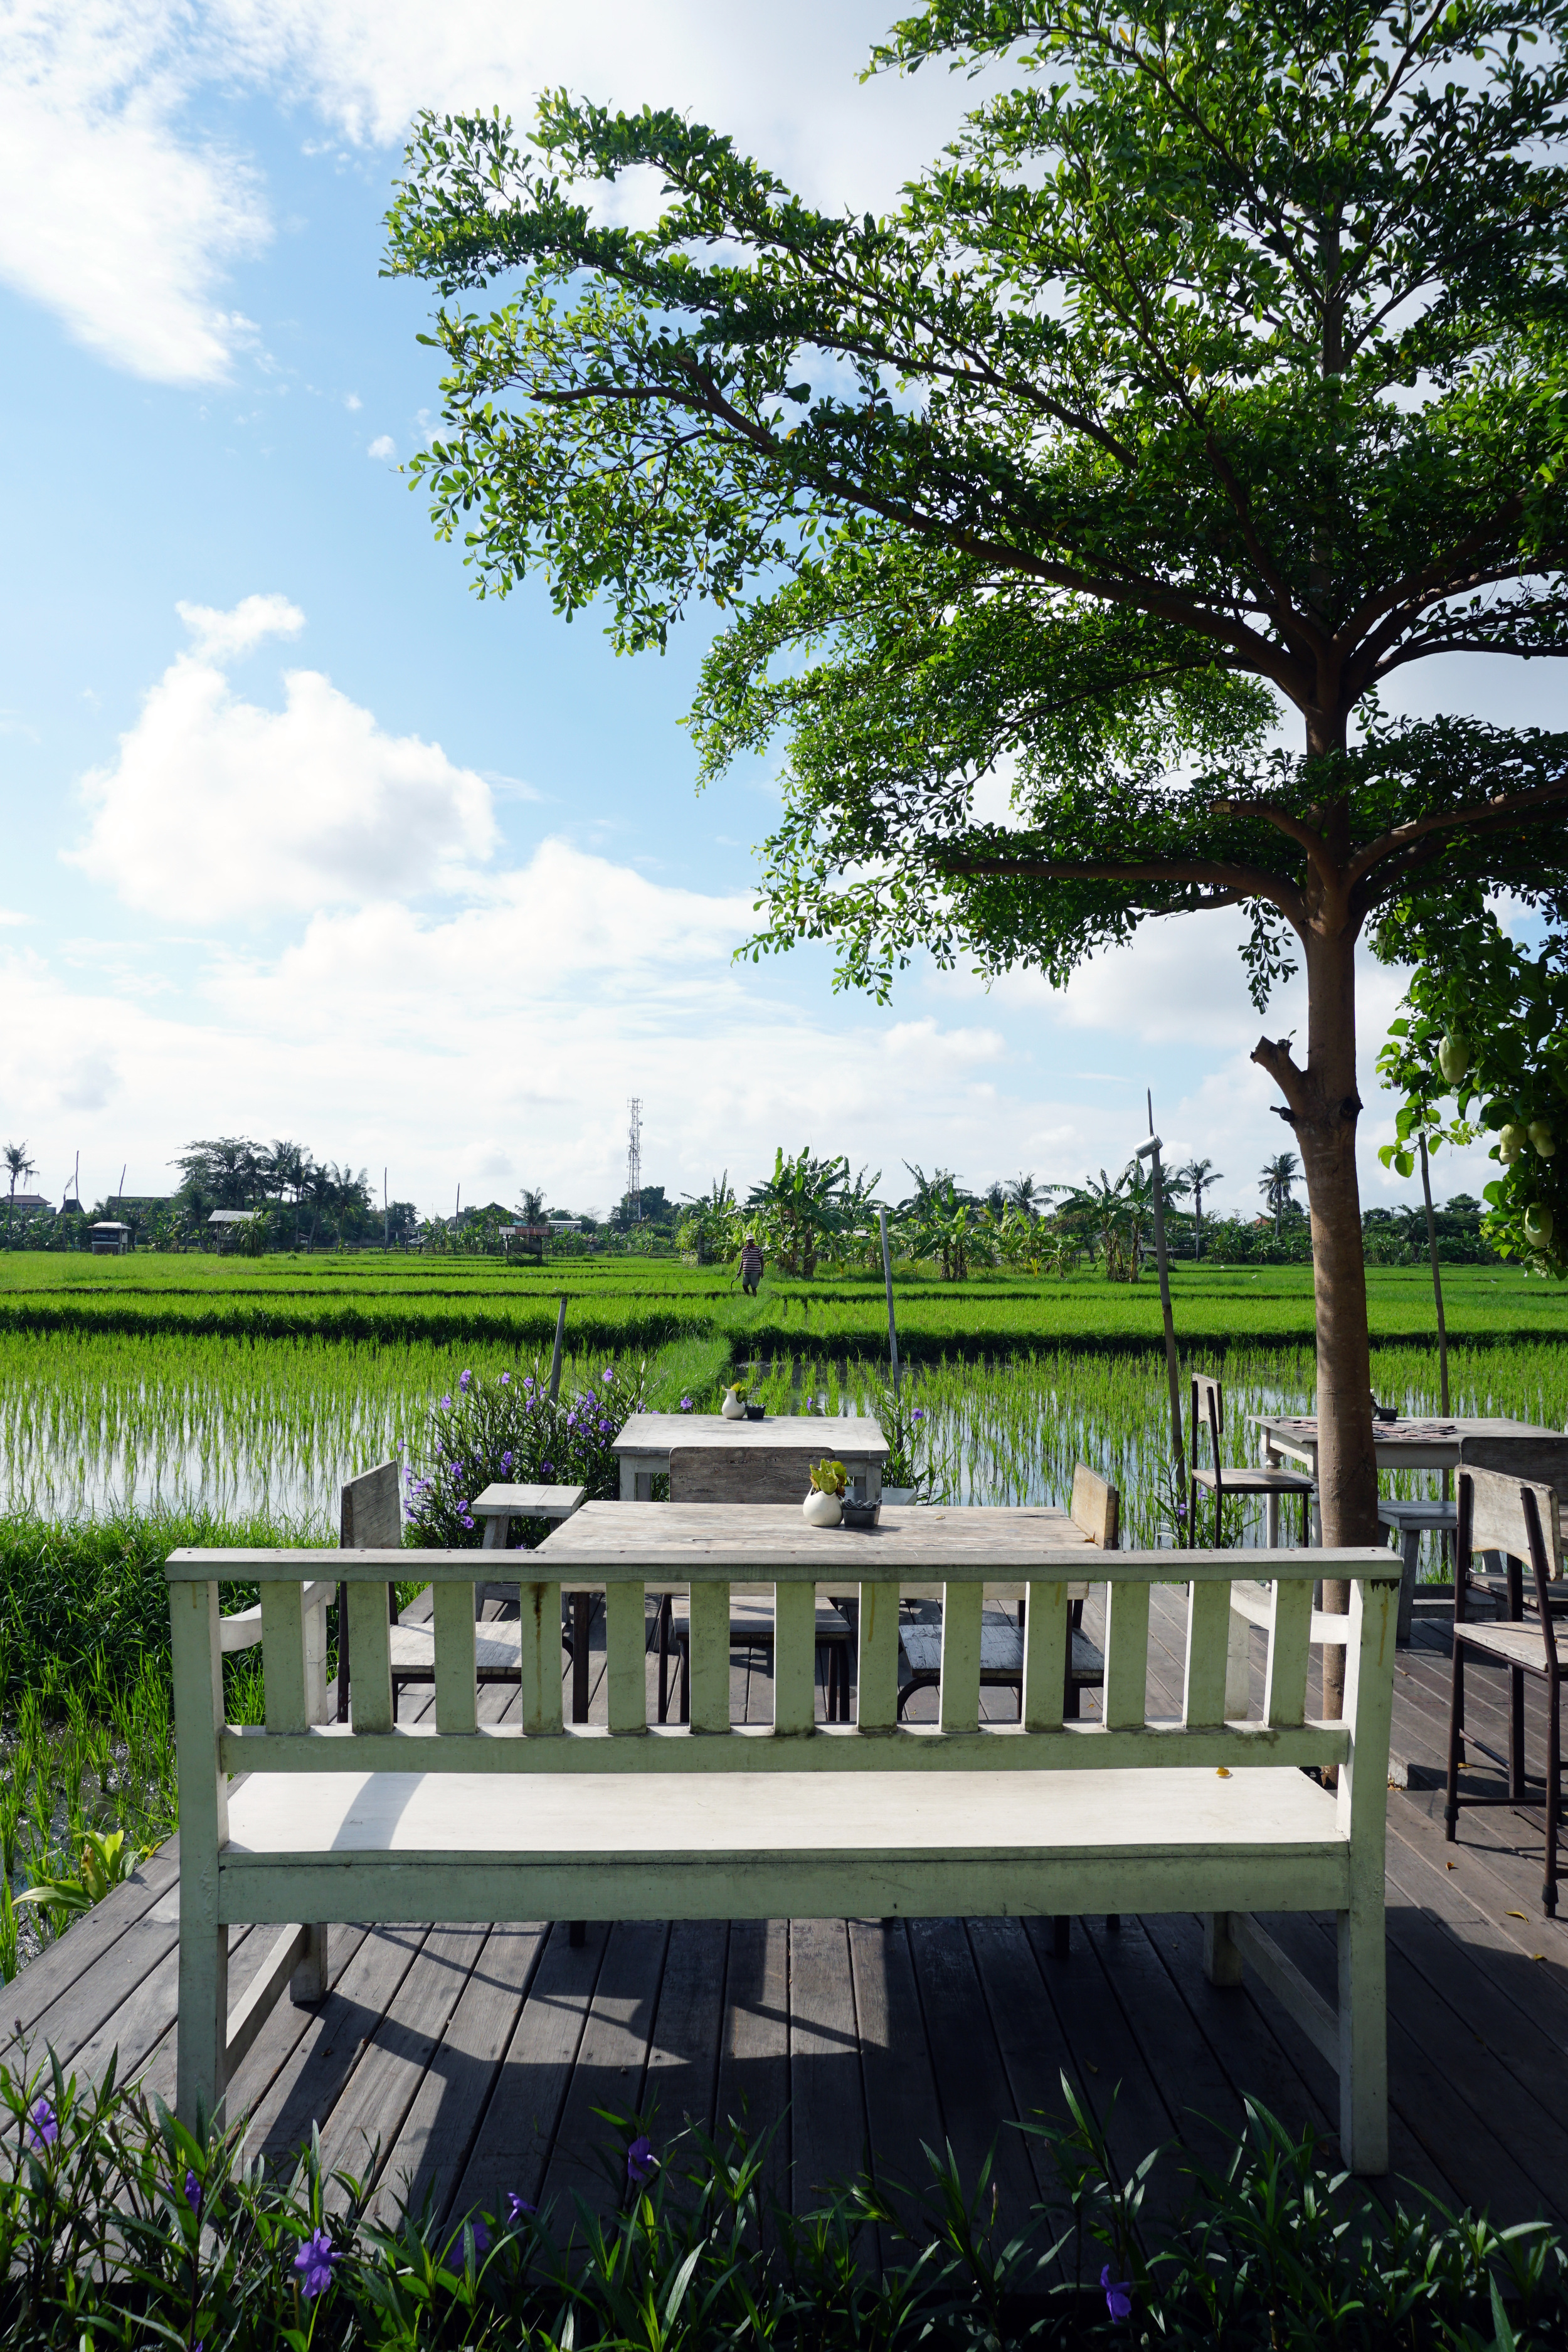 Amidst rice fields at Nook